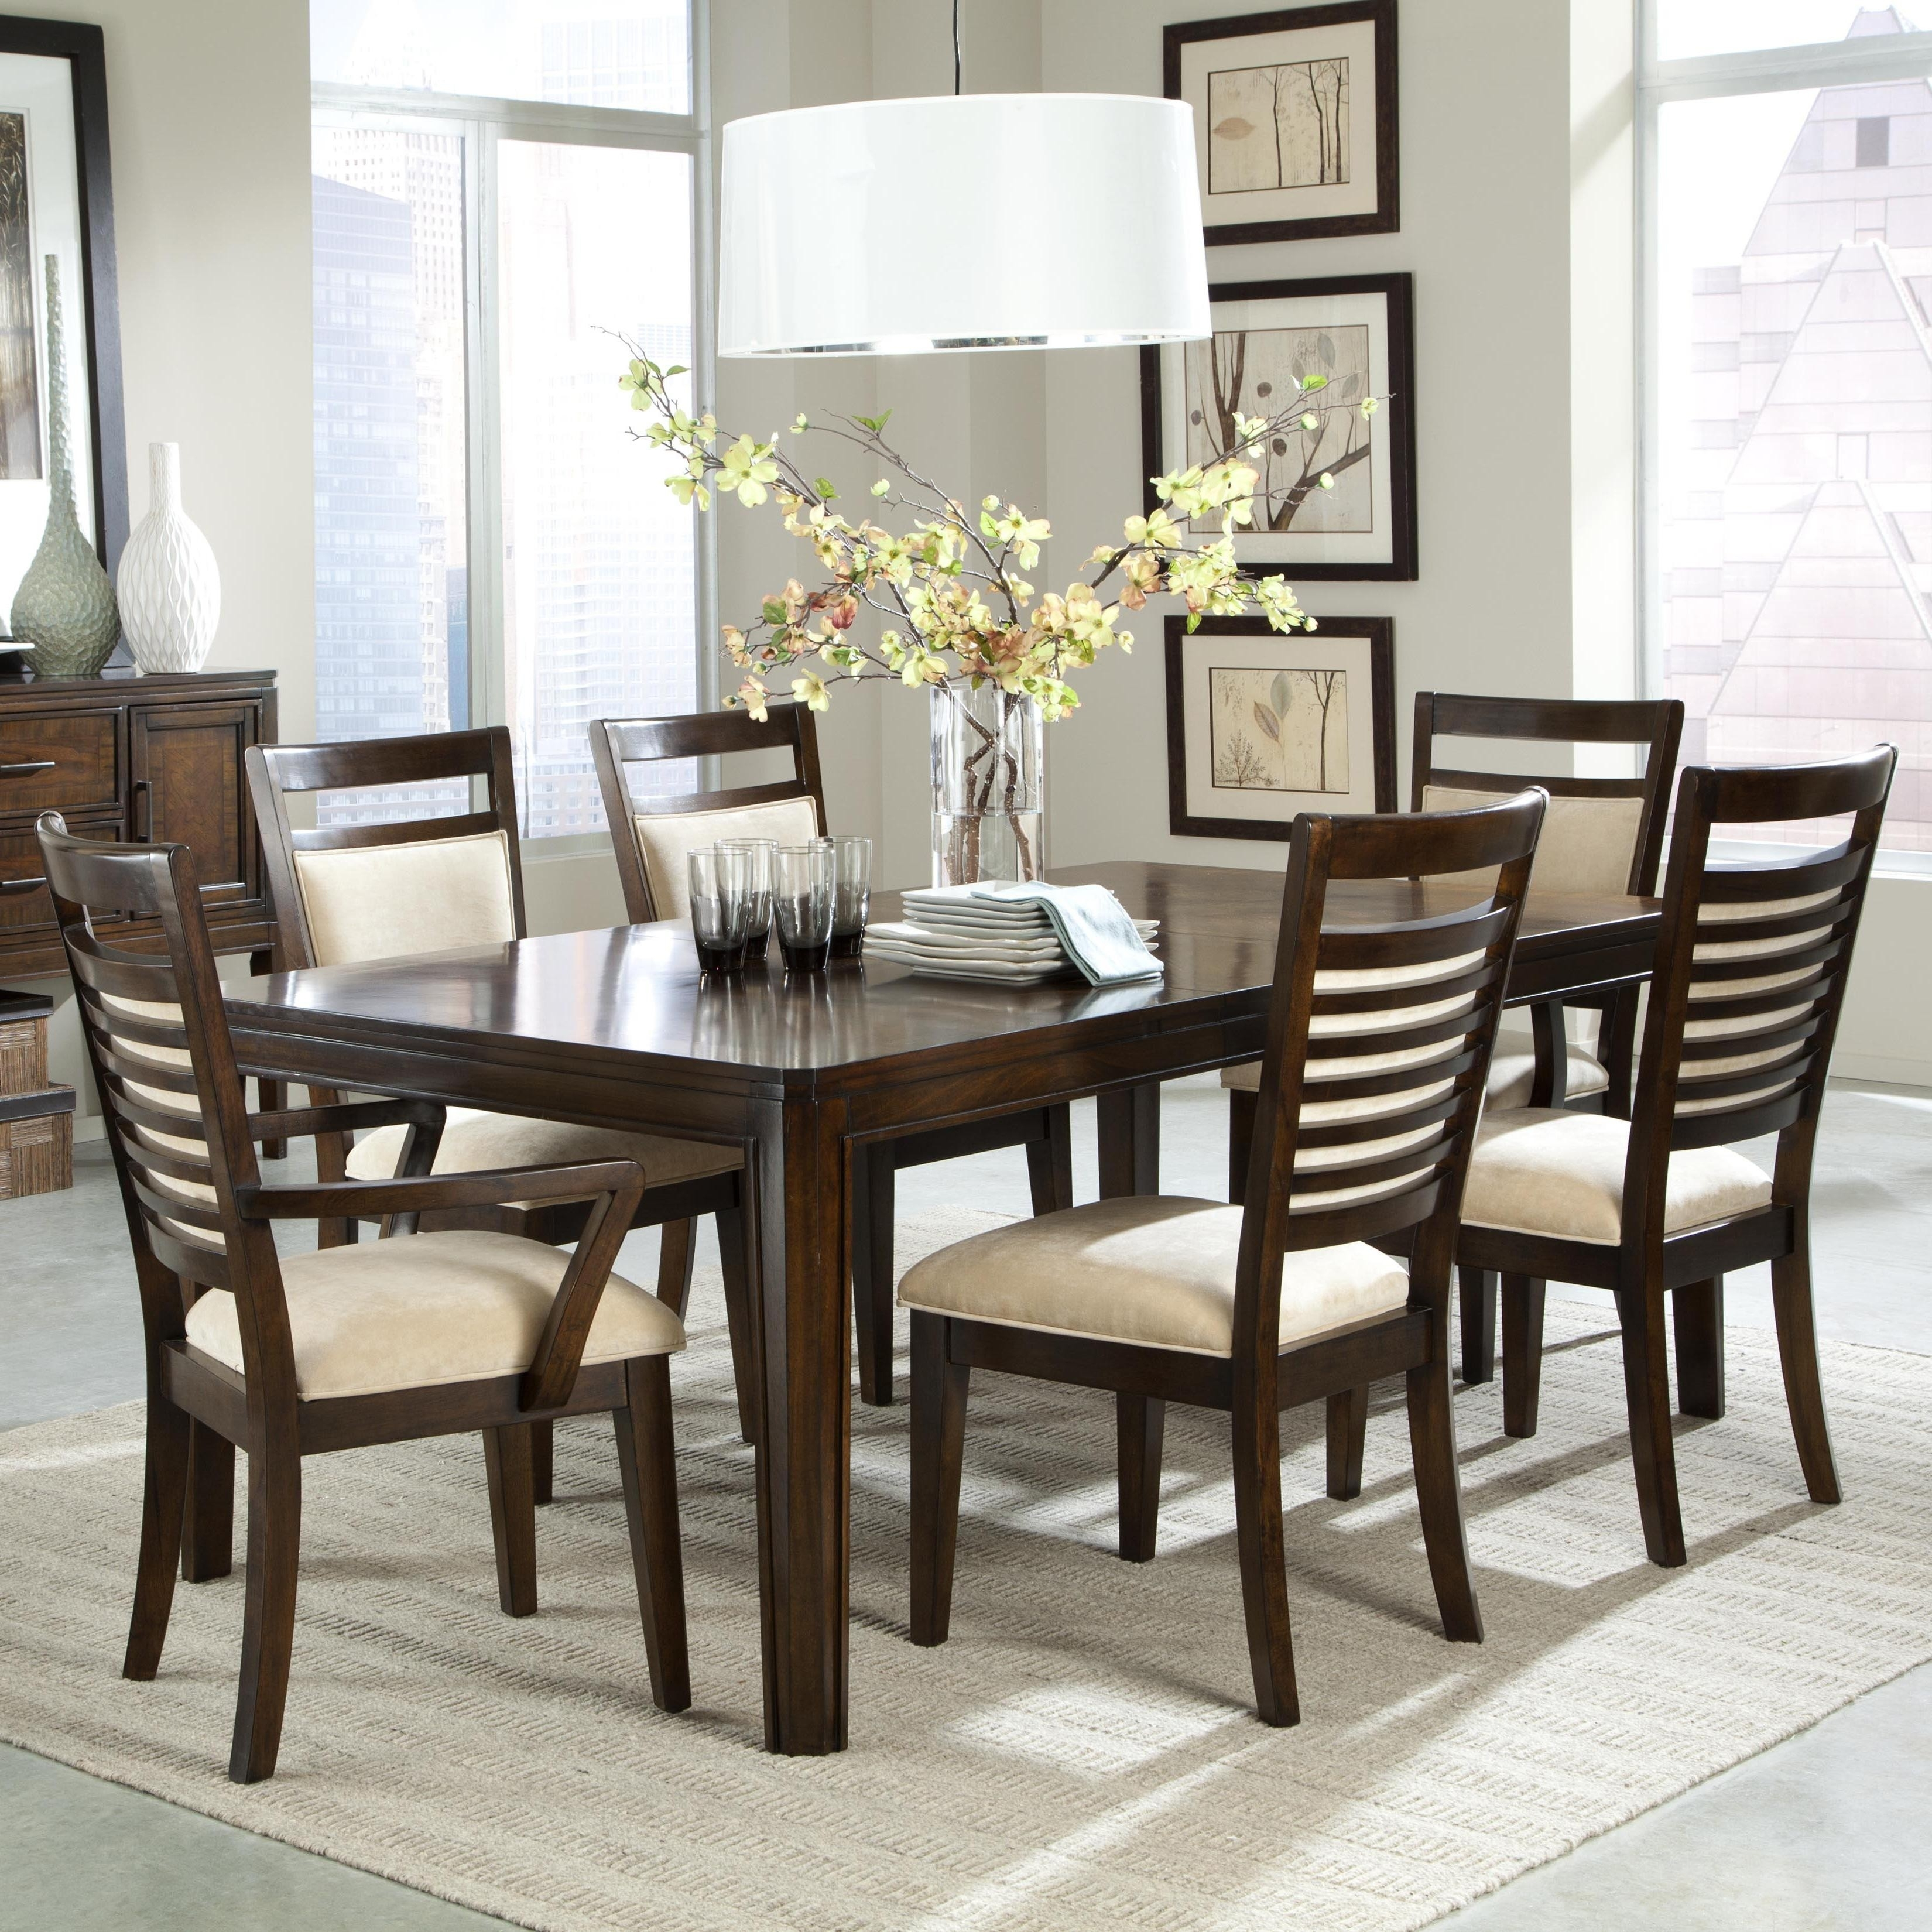 Dining Table Upholstered Chairs Unique The Pemberleigh Round Table With Most Recent Jaxon Grey 6 Piece Rectangle Extension Dining Sets With Bench & Uph Chairs (View 20 of 20)